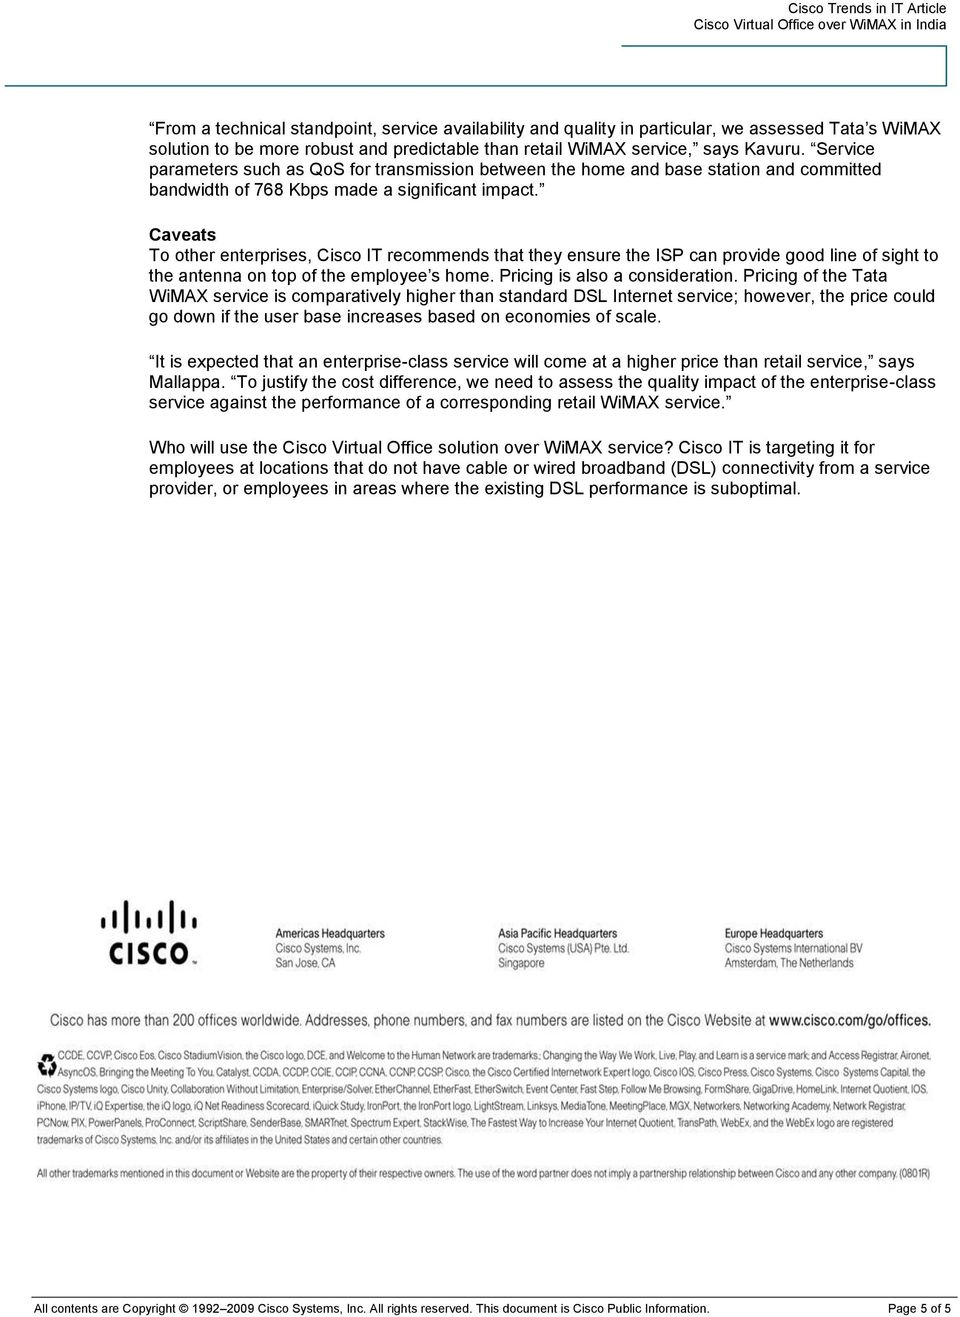 Caveats To other enterprises, Cisco IT recommends that they ensure the ISP can provide good line of sight to the antenna on top of the employee s home. Pricing is also a consideration.